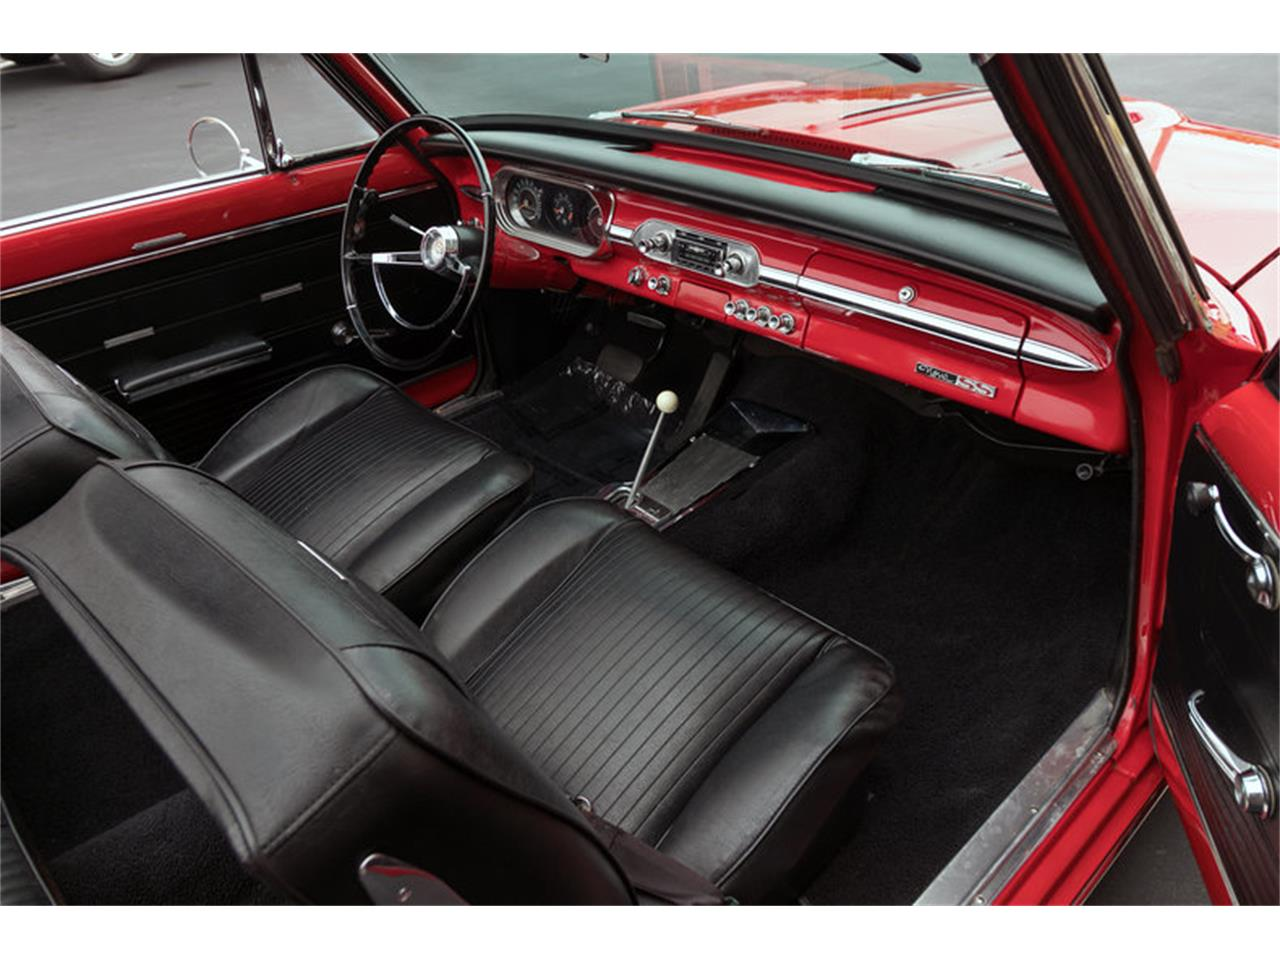 Large Picture of Classic 1963 Chevy II Nova located in Missouri - $32,995.00 - MAT6